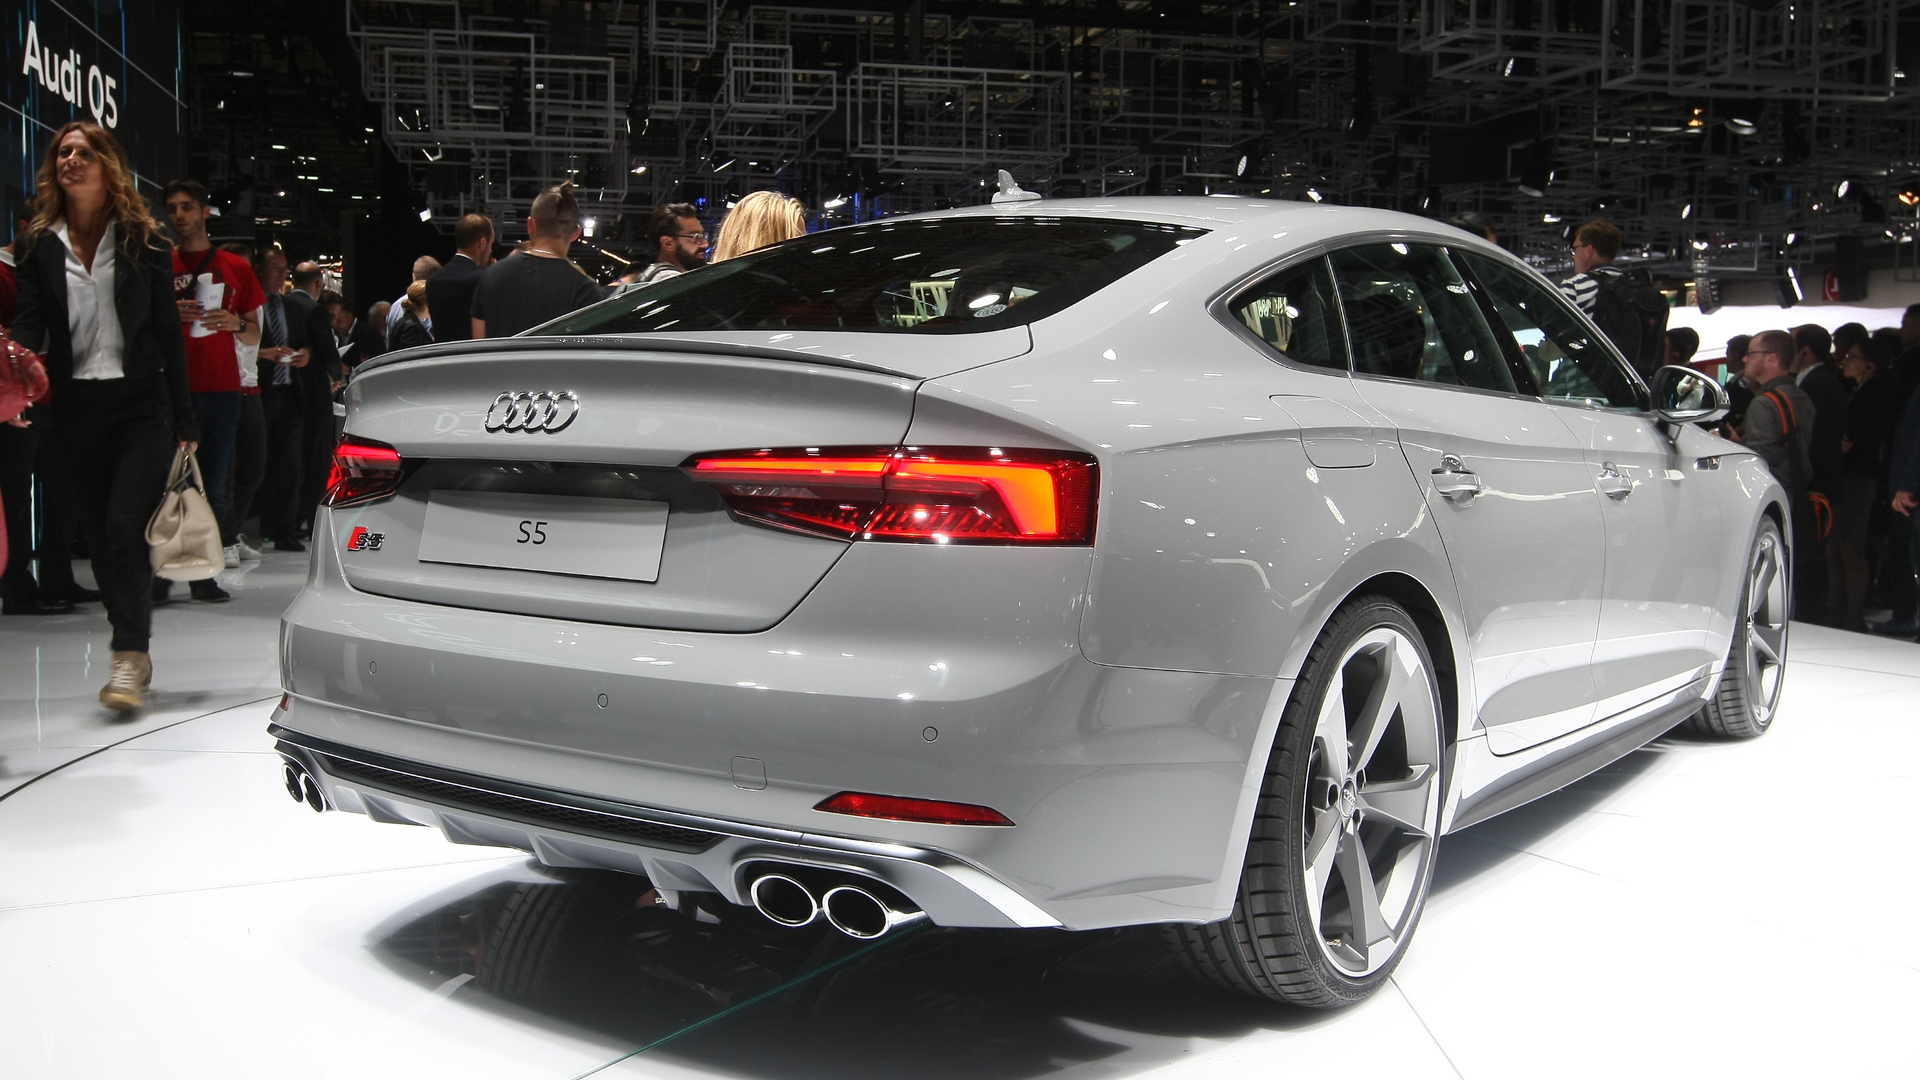 audi s5 coupe sportback grace paris with their sleek bodies. Black Bedroom Furniture Sets. Home Design Ideas